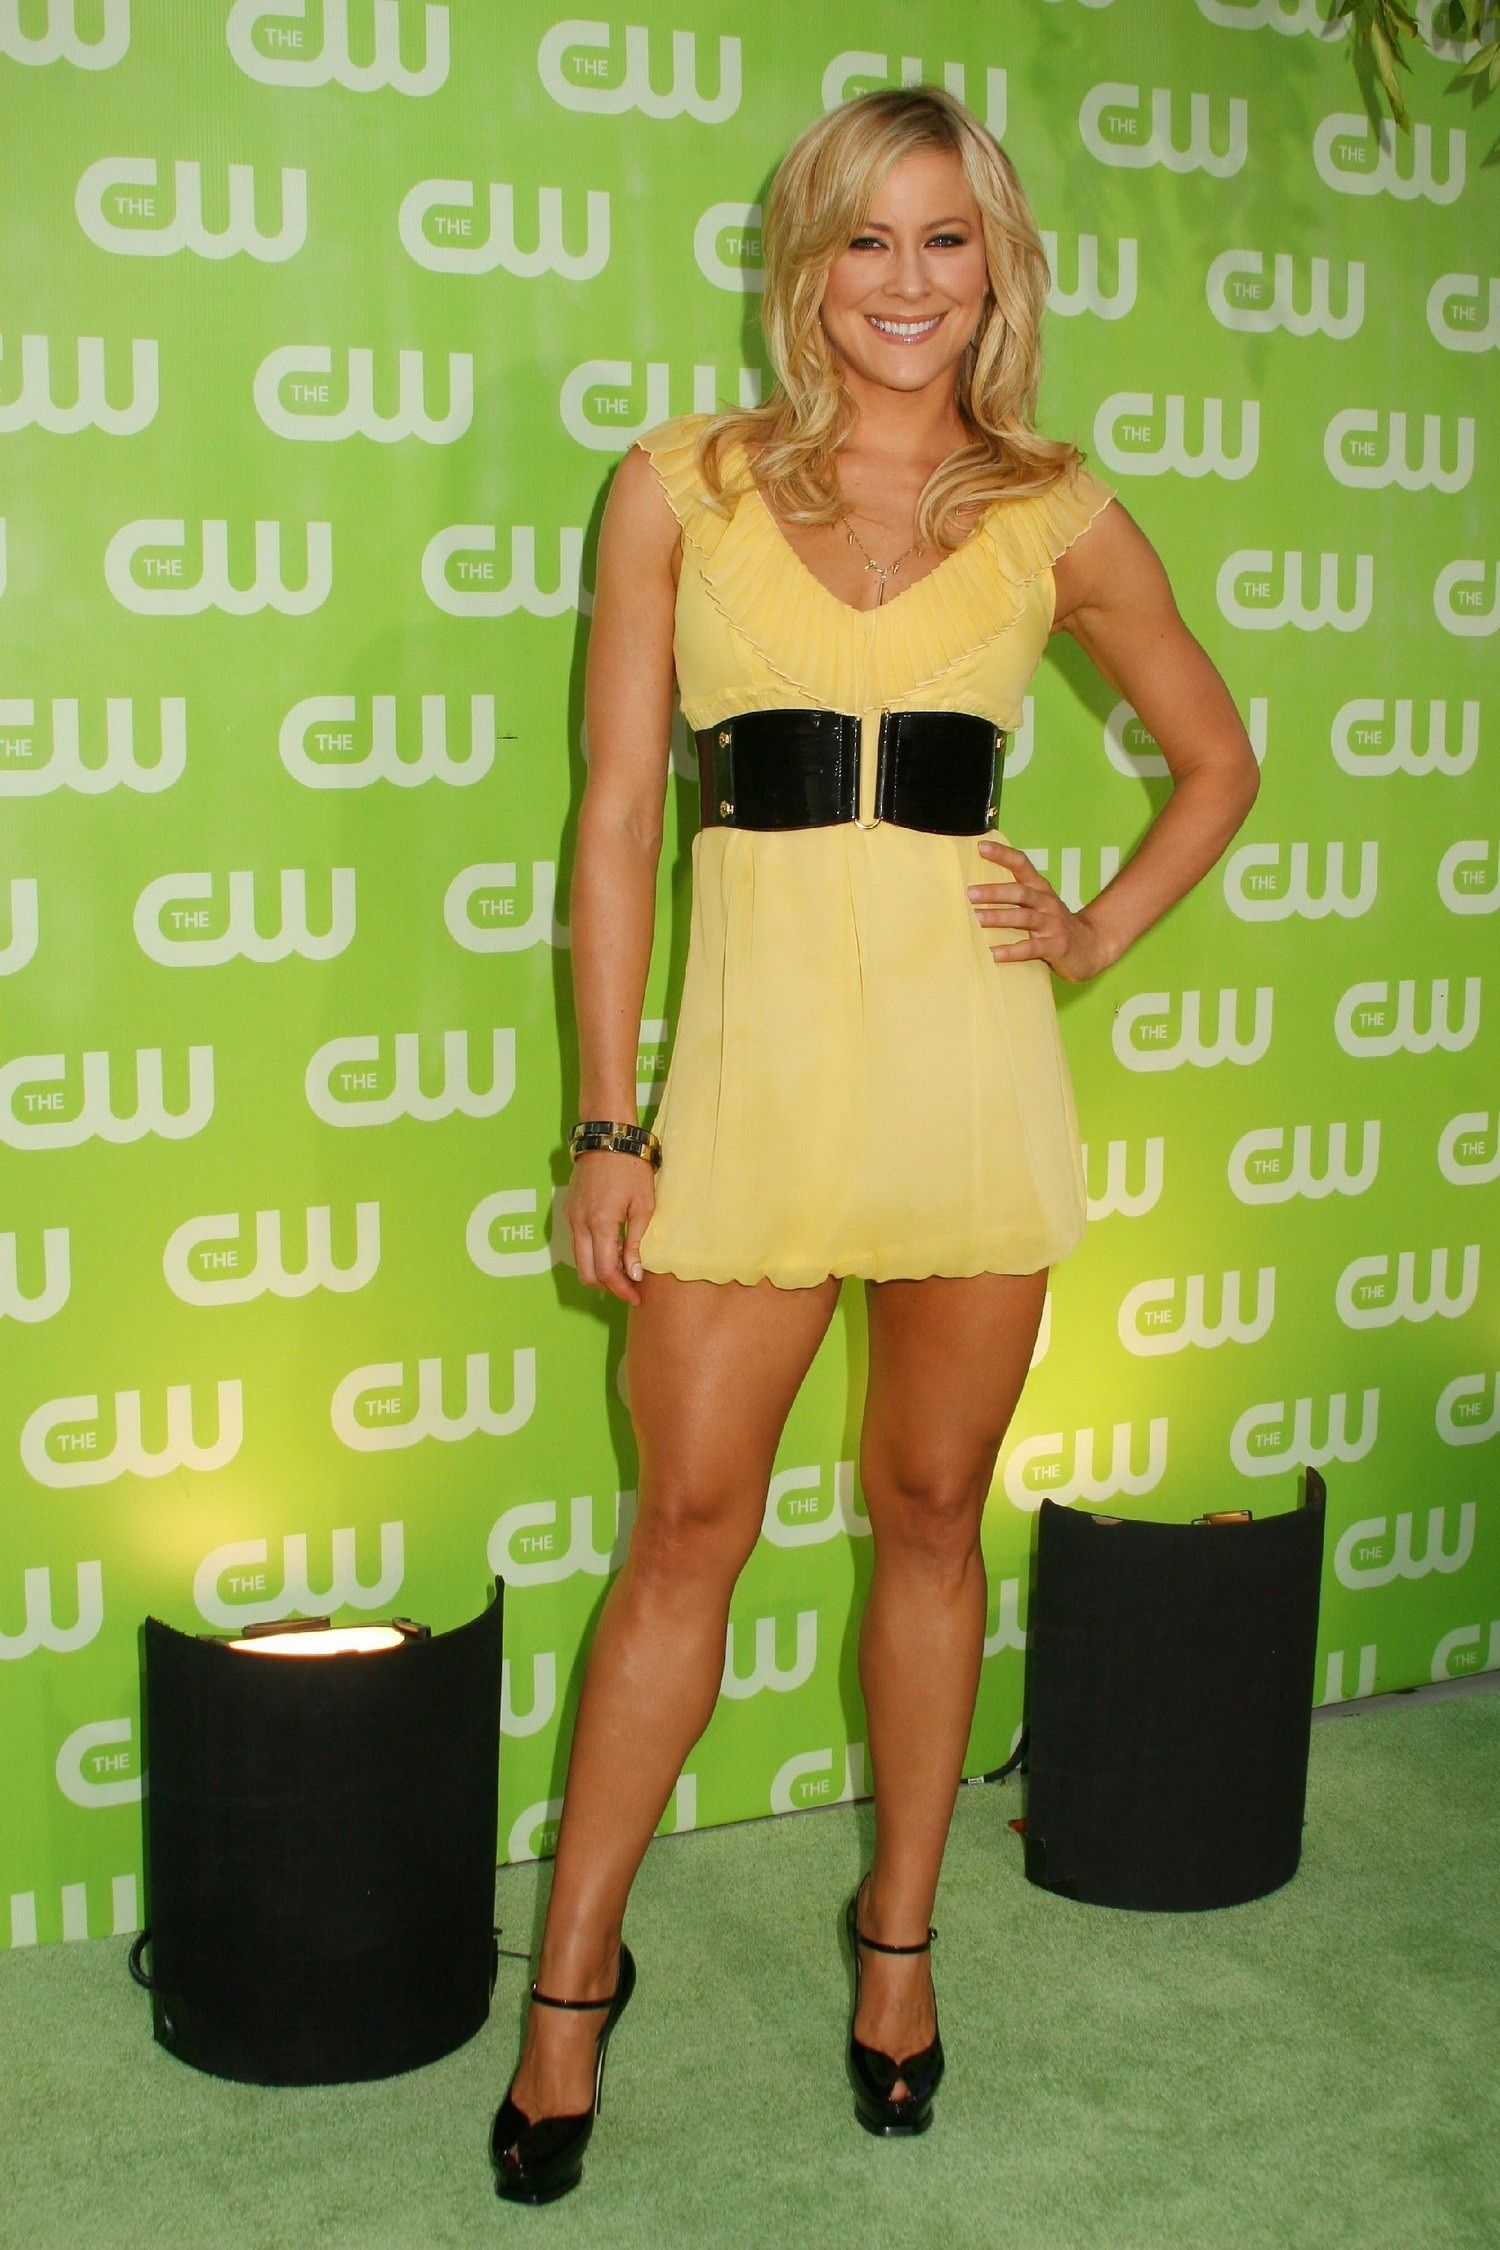 Brittany Daniel Brittany Daniel new pictures